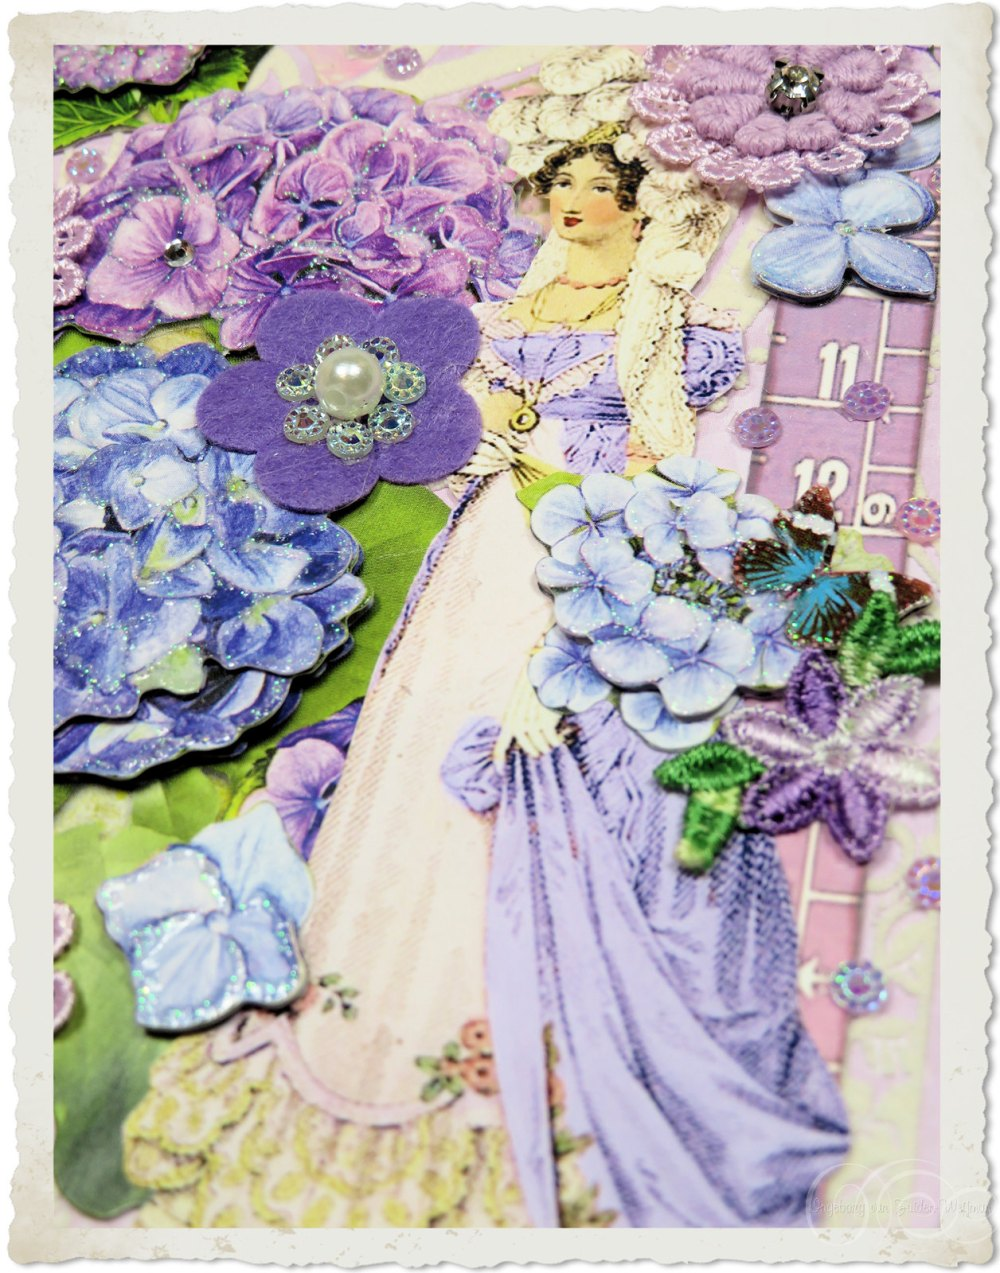 Regency lady with purple flowers by Ingeborg van Zuiden